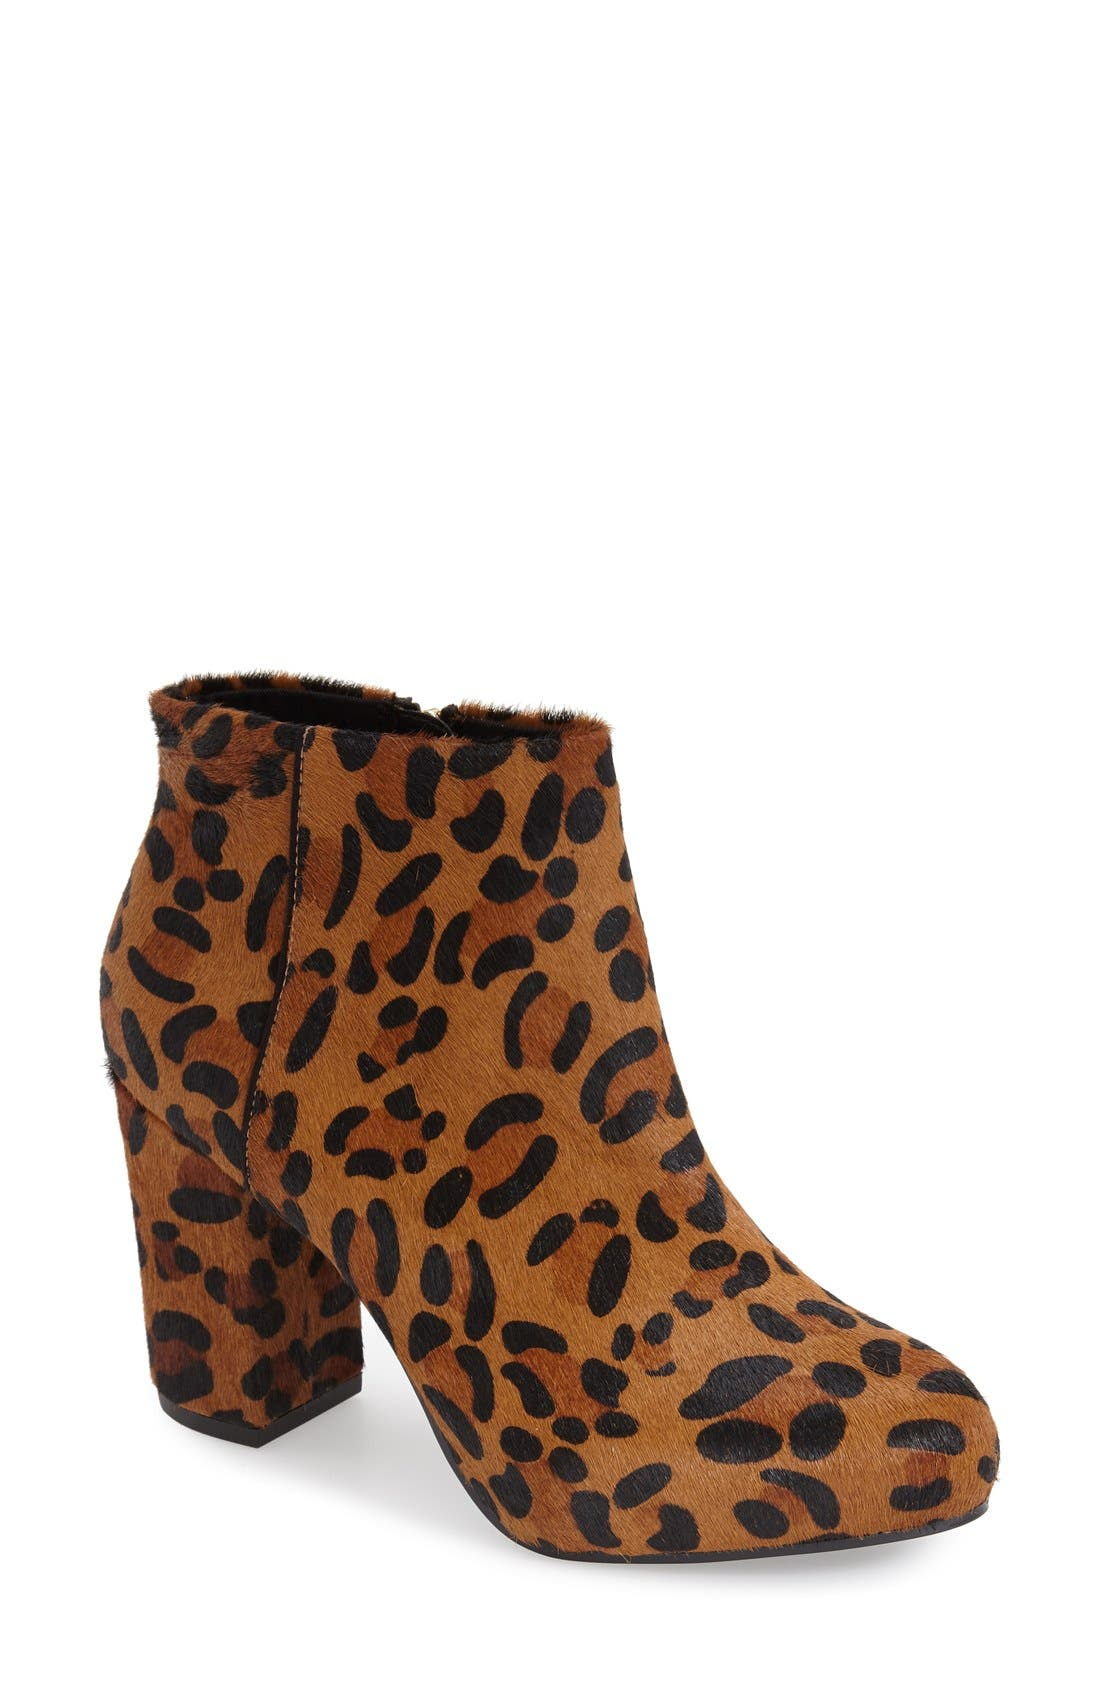 Alternate Image 1 Selected - Topshop 'Miles Inside' Leopard Print Genuine Calf Hair Platform Bootie (Women)